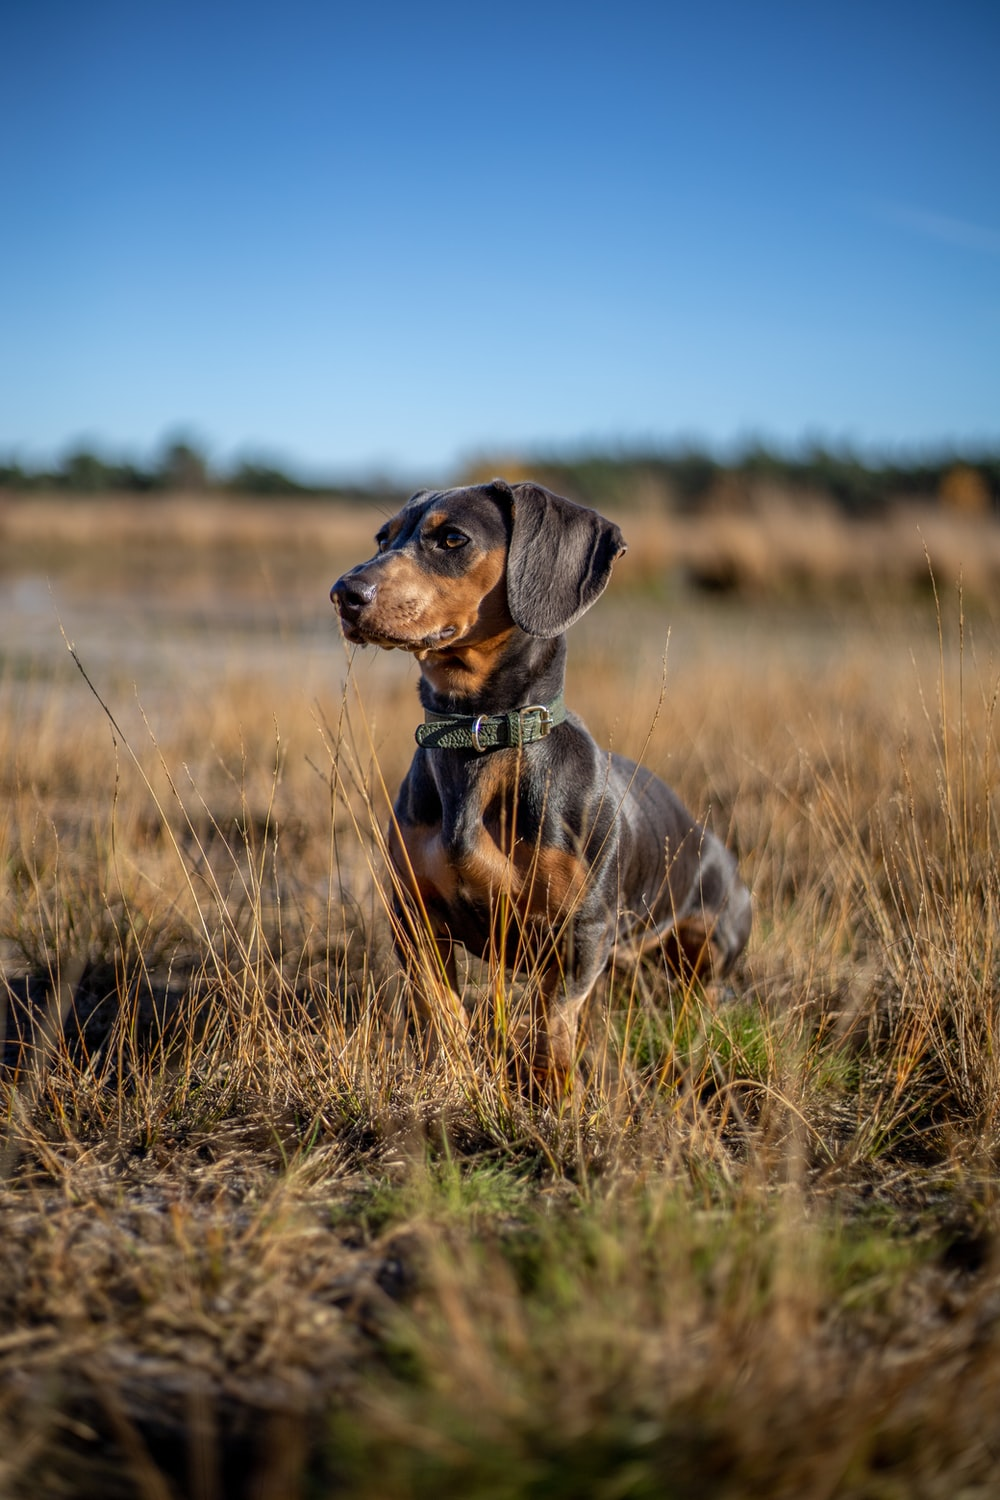 black and brown short coated dog on green grass field during daytime